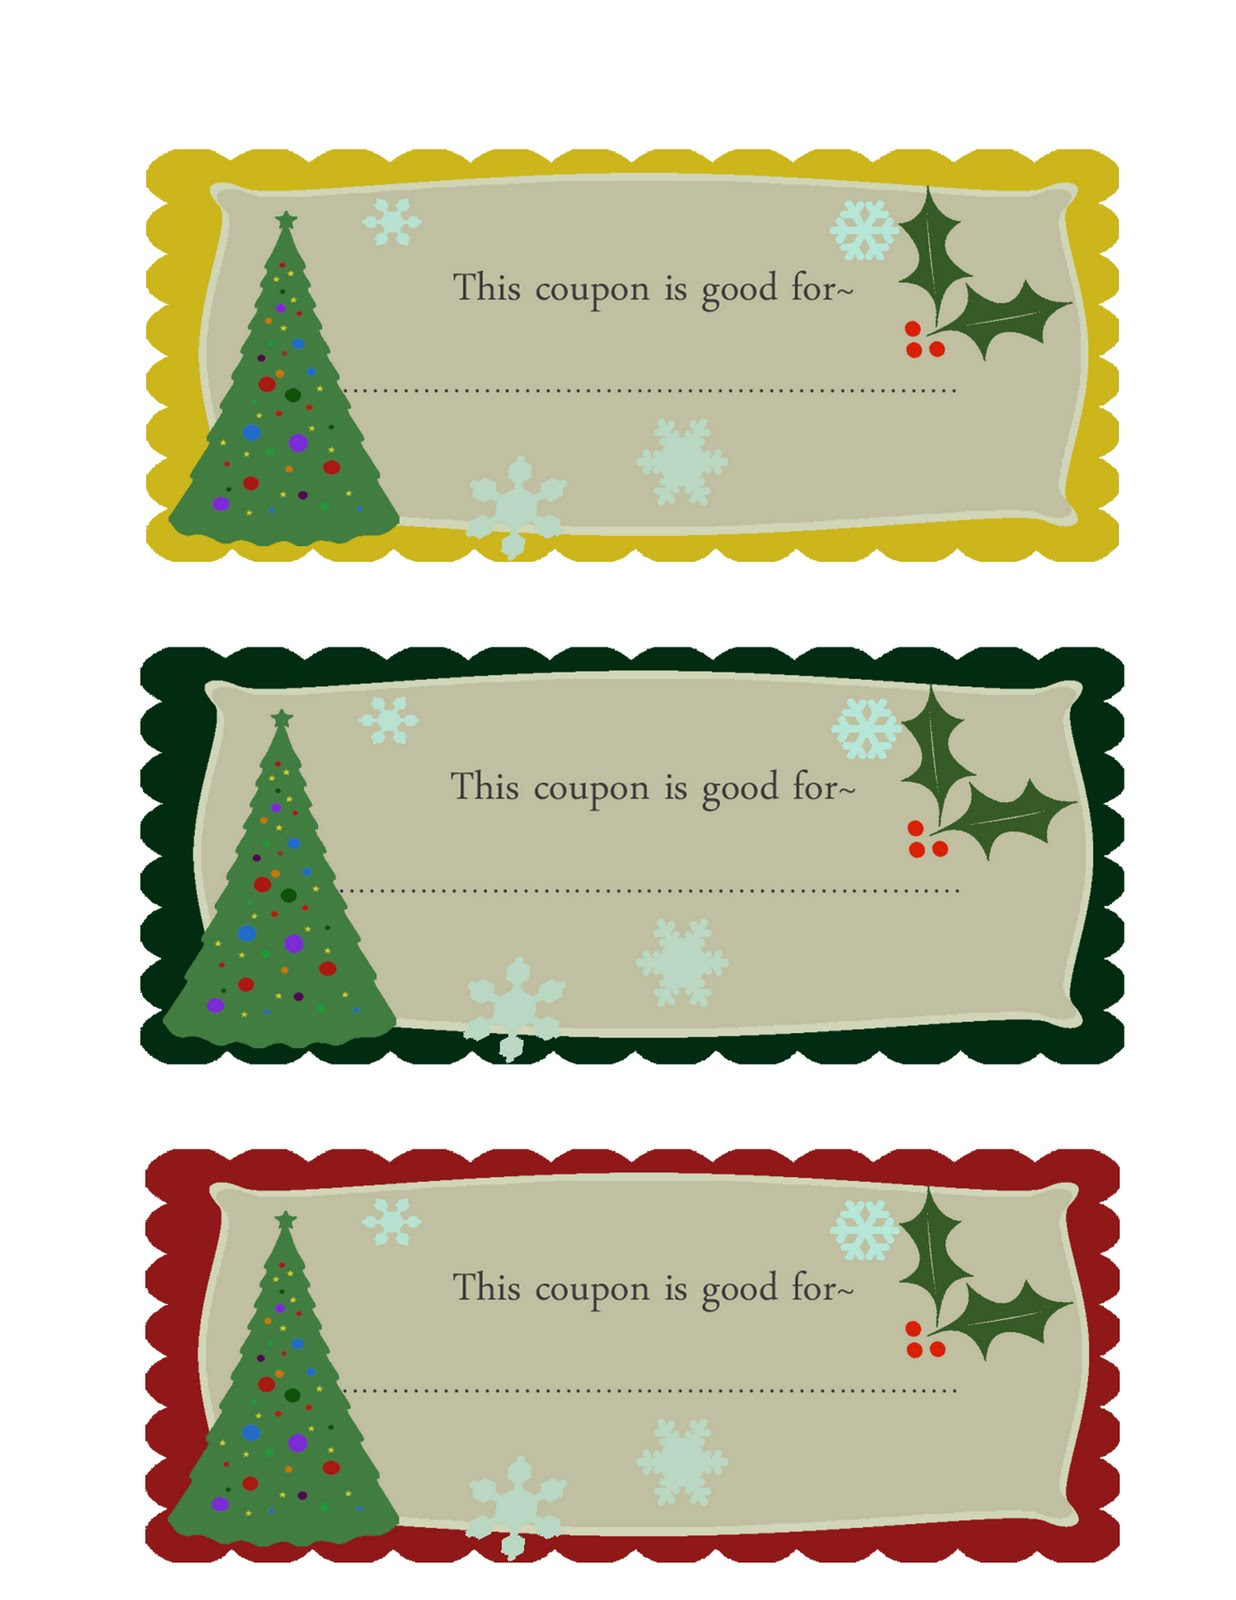 christmas gift certificate template pages resume templates christmas gift certificate template pages 10 printable christmas gift certificates o hloom christmas coupon template